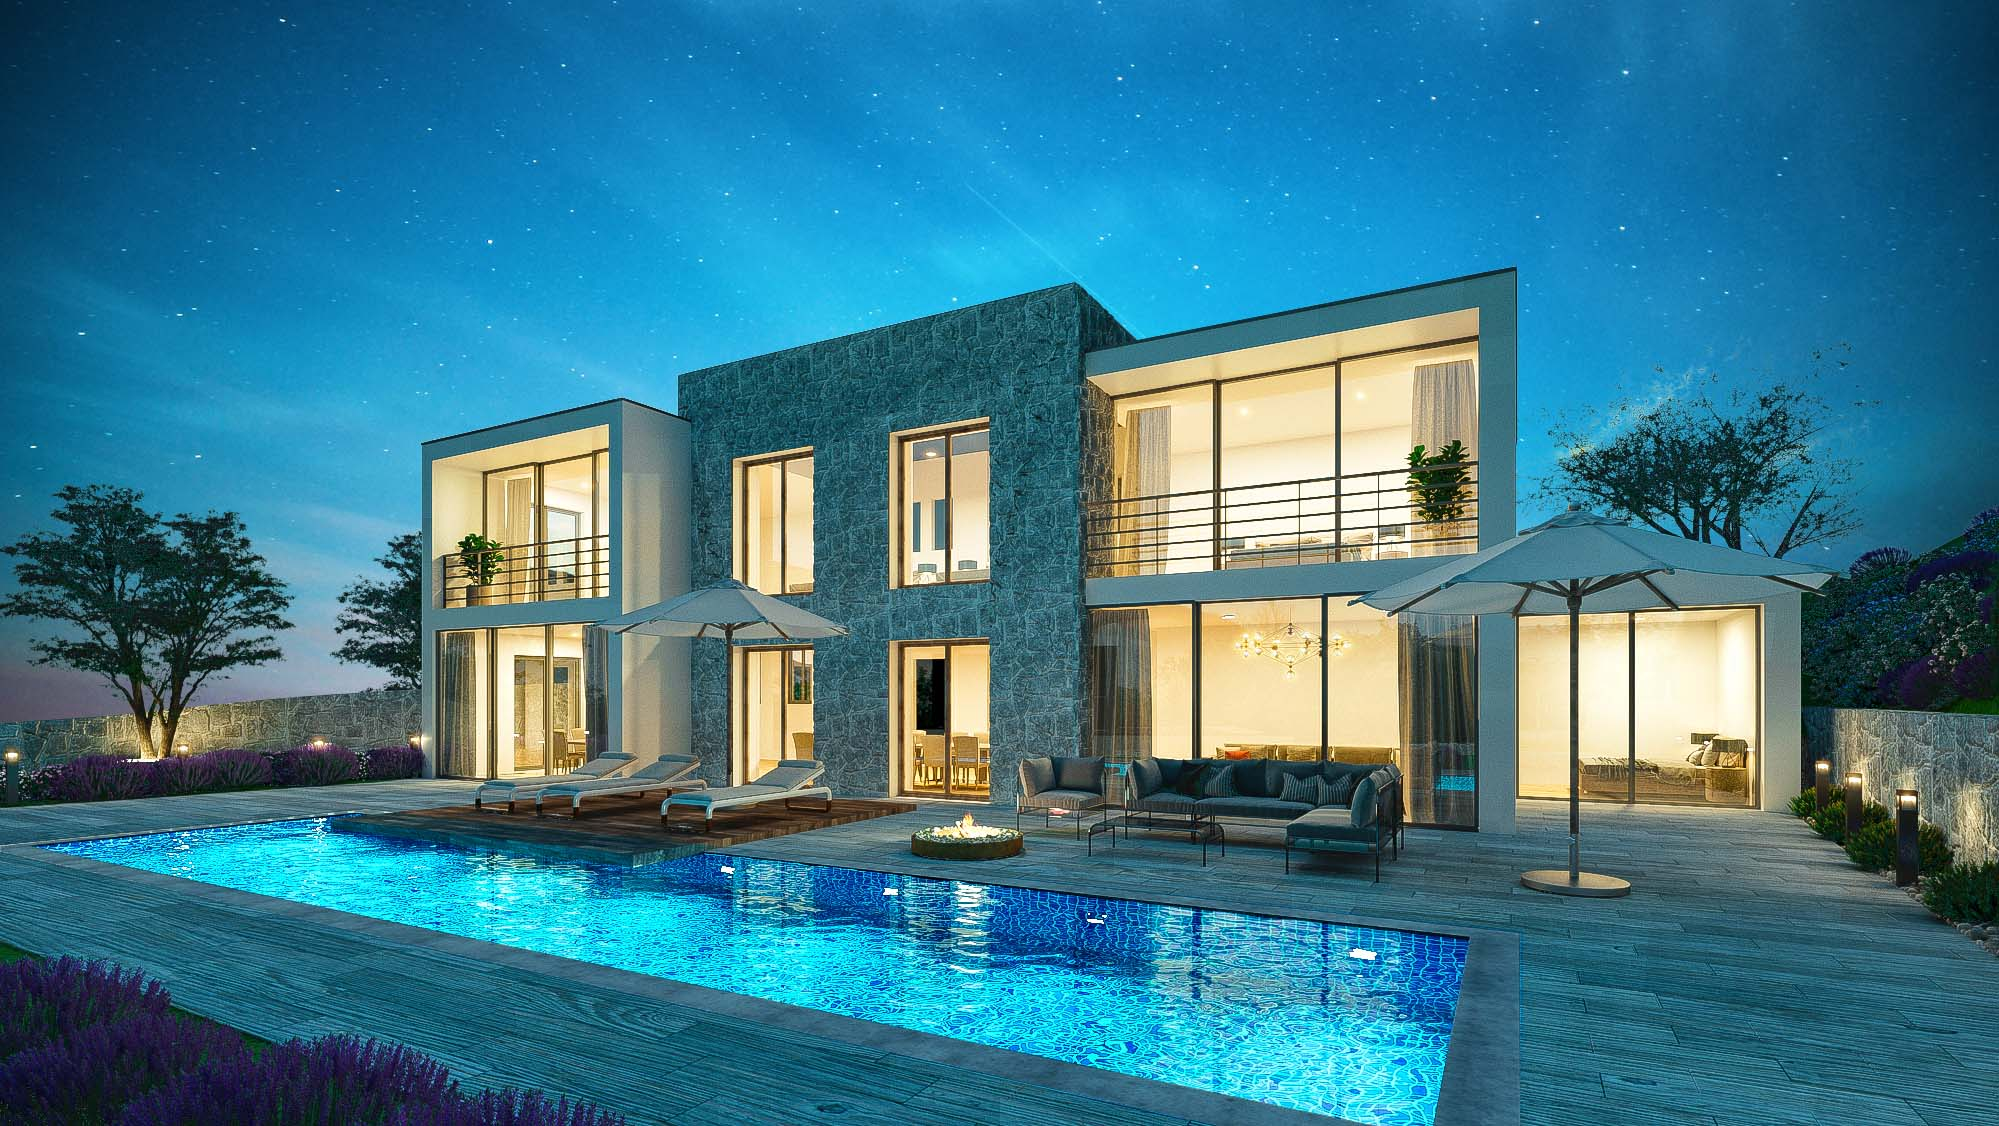 3D Rendering Exterior day & night